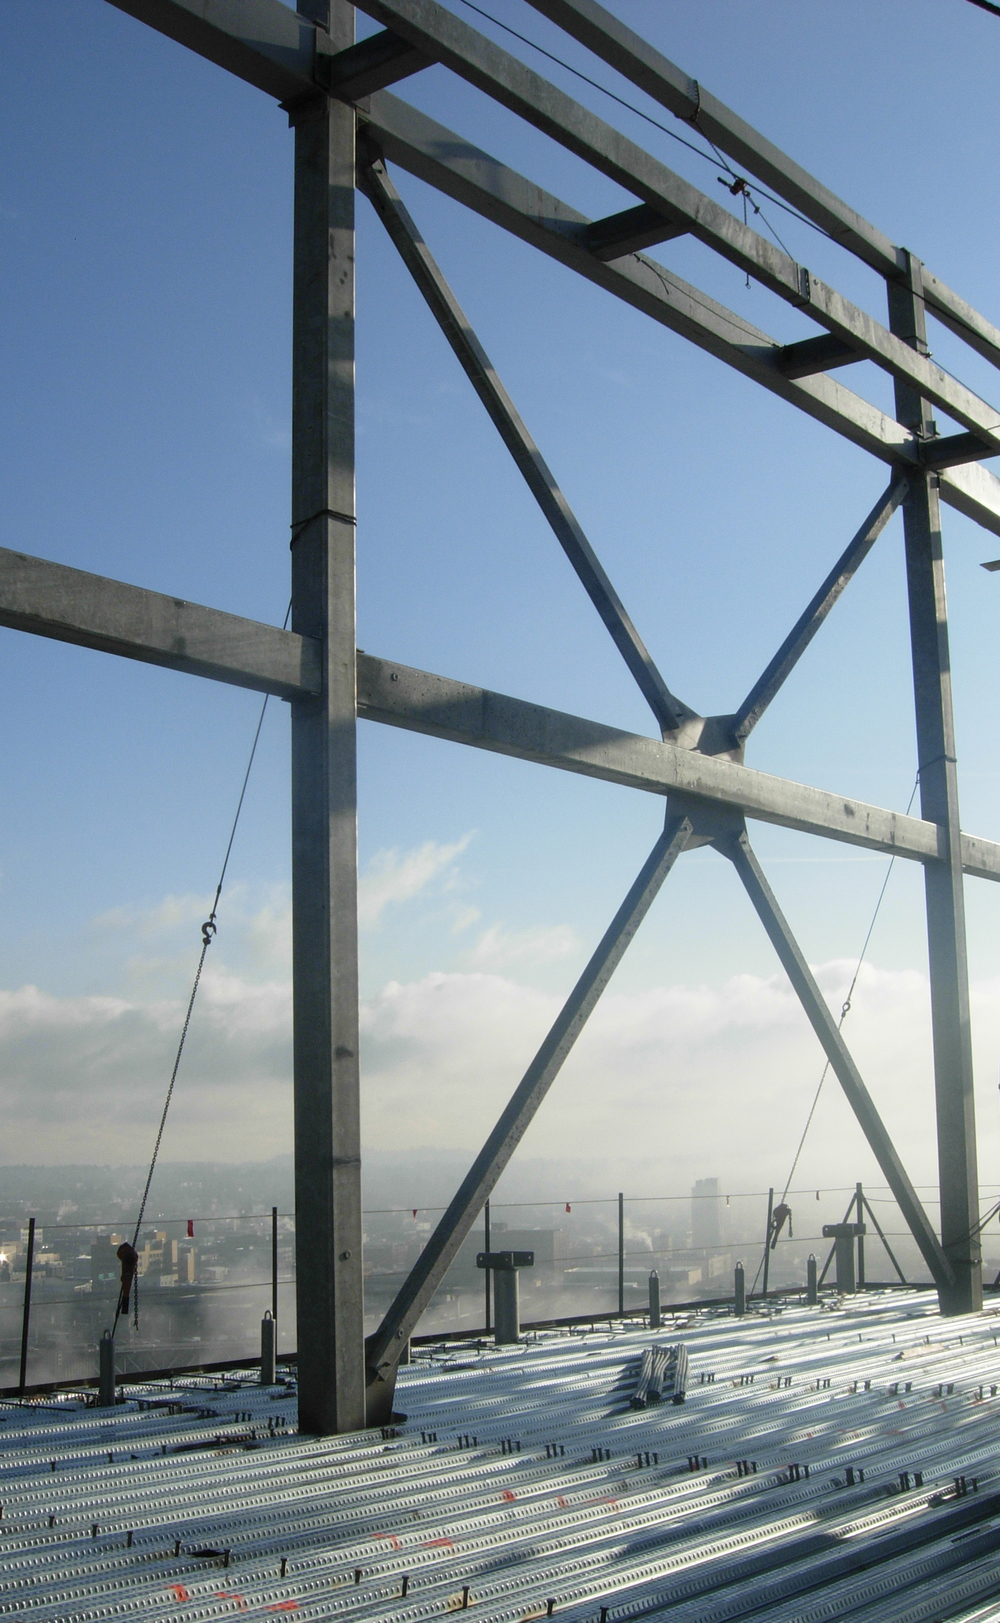 first-and-main-rf-stearns-structural-steel-construction.jpg